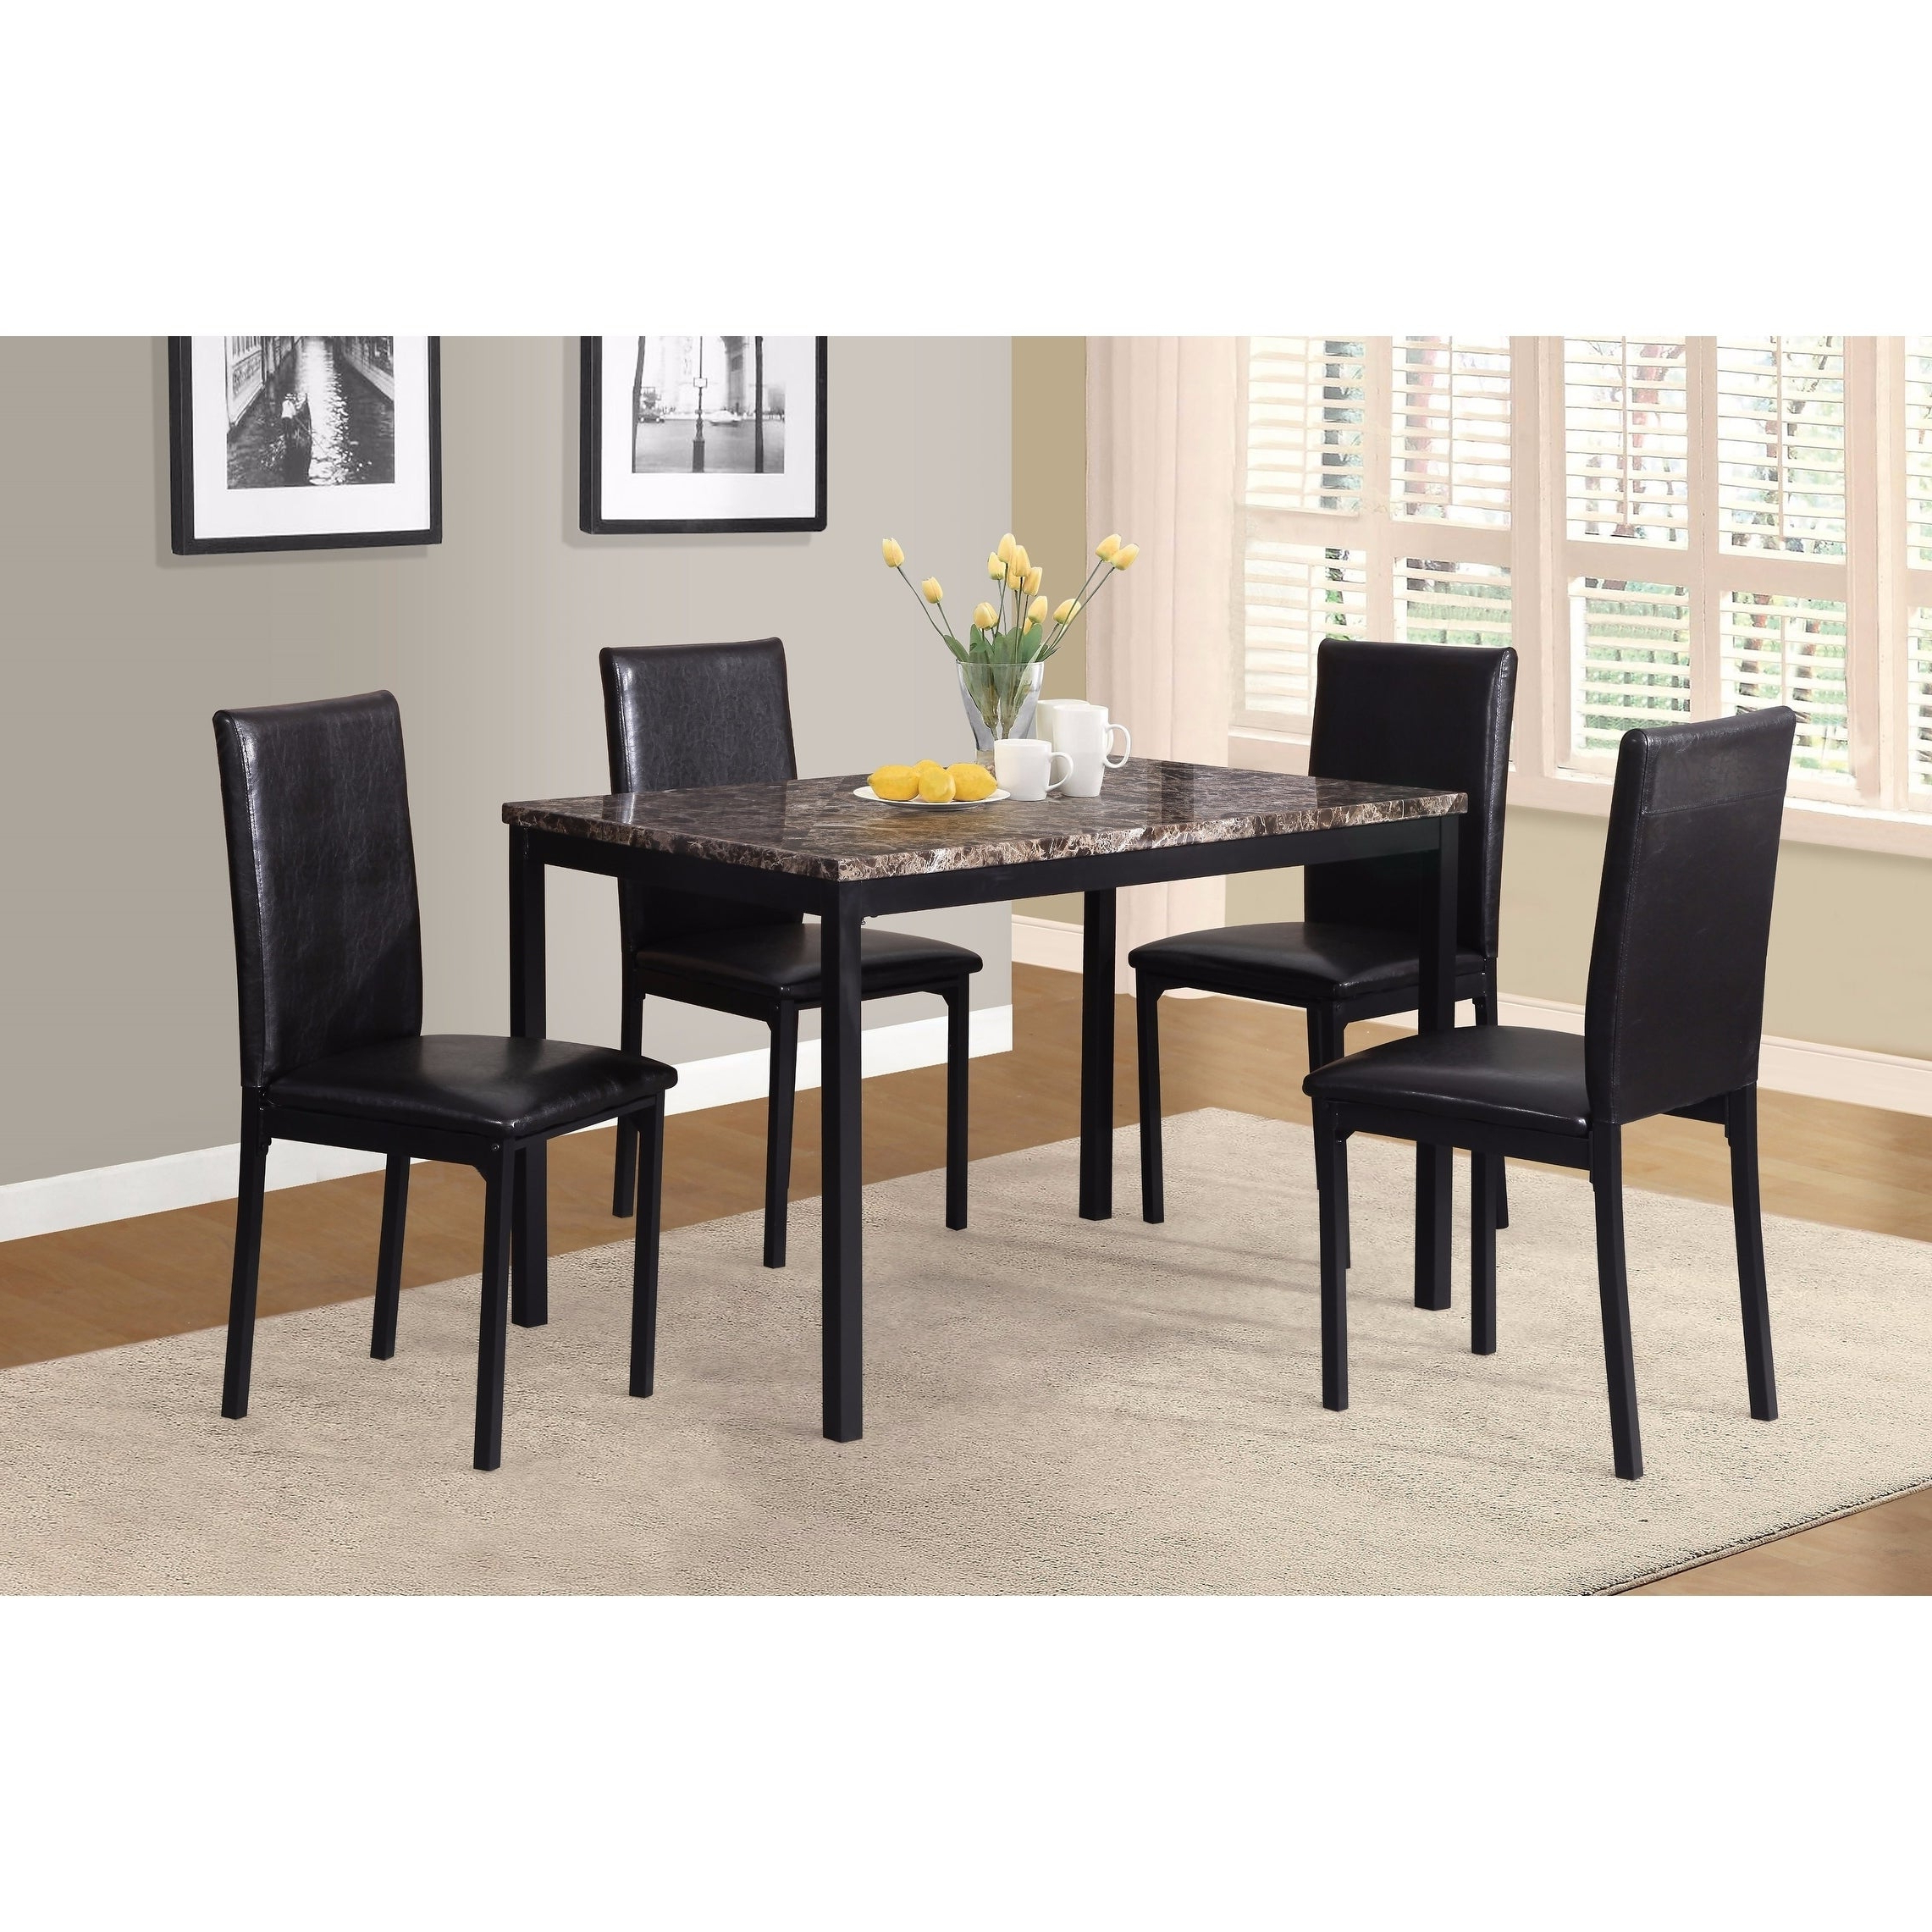 Noyes 5 Piece Dining Sets Within Best And Newest Noyes Metal Dining Table With Laminated Faux Marble Top – Black (View 9 of 20)